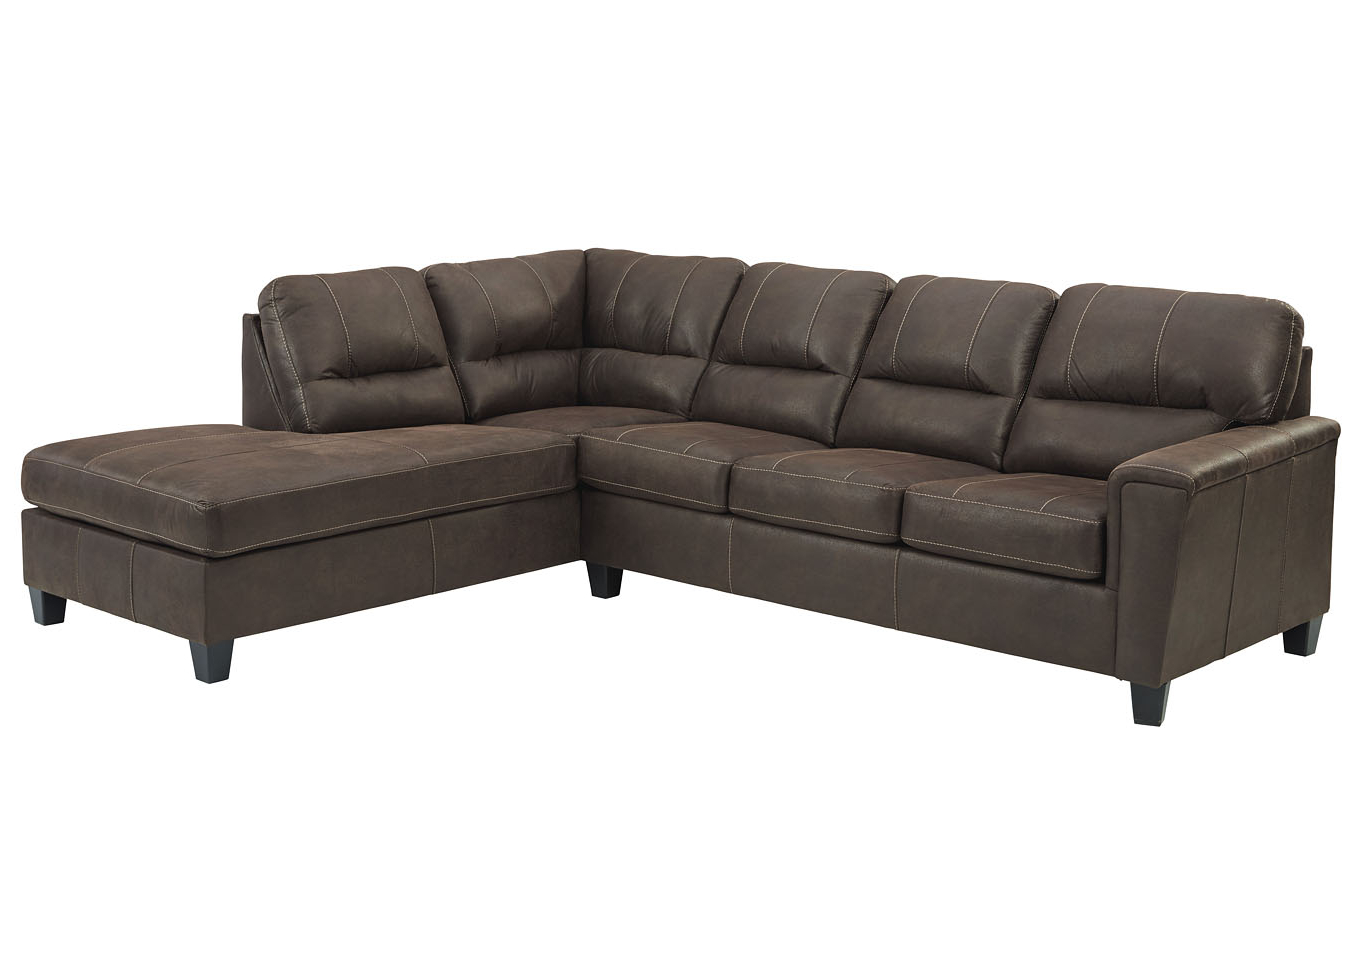 Popular Navi Chestnut Right Arm Facing Sofa Chaise Family Within 2Pc Maddox Right Arm Facing Sectional Sofas With Chaise Brown (View 13 of 25)